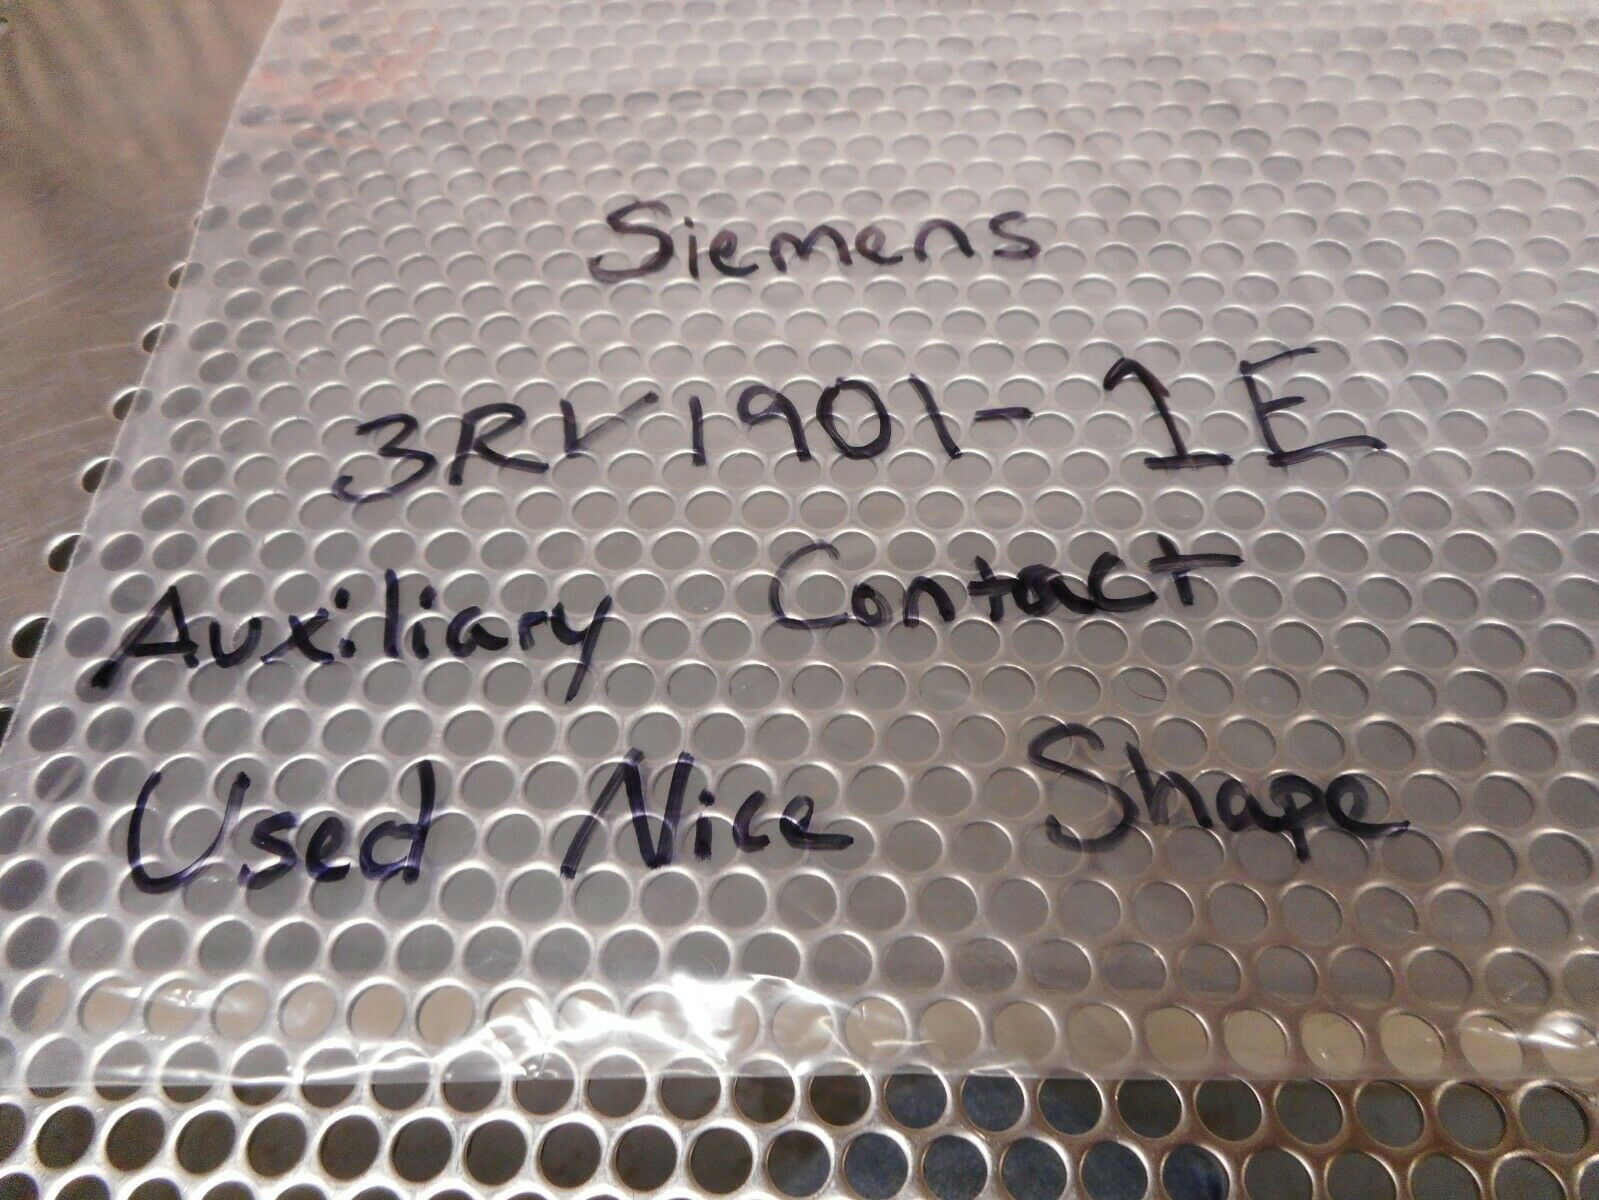 Side Mount Siemens 3RV19 22-1CV0 Undervoltage Release with Leading Auxiliary 2 NO Contact 400VAC at 50Hz 3RV19221CV0 Screw Connection